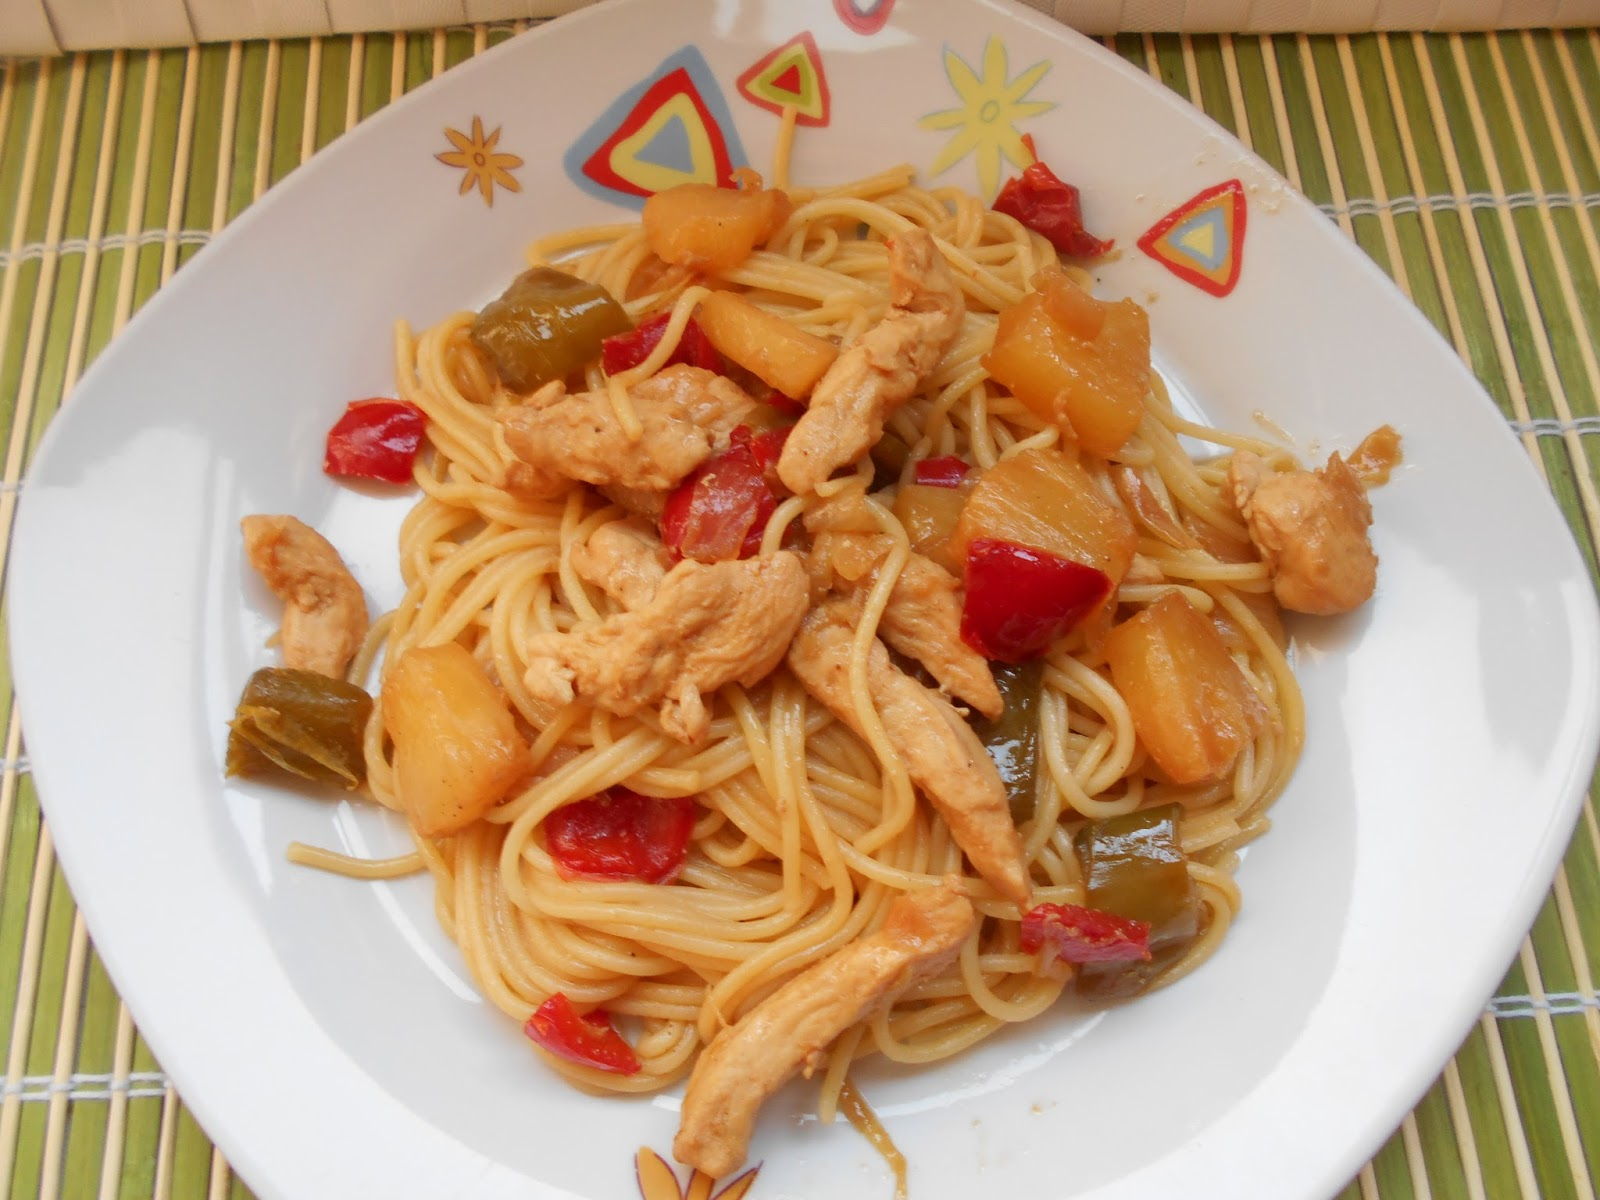 Image Result For Receta Espaguetis Integrales Con Pollo